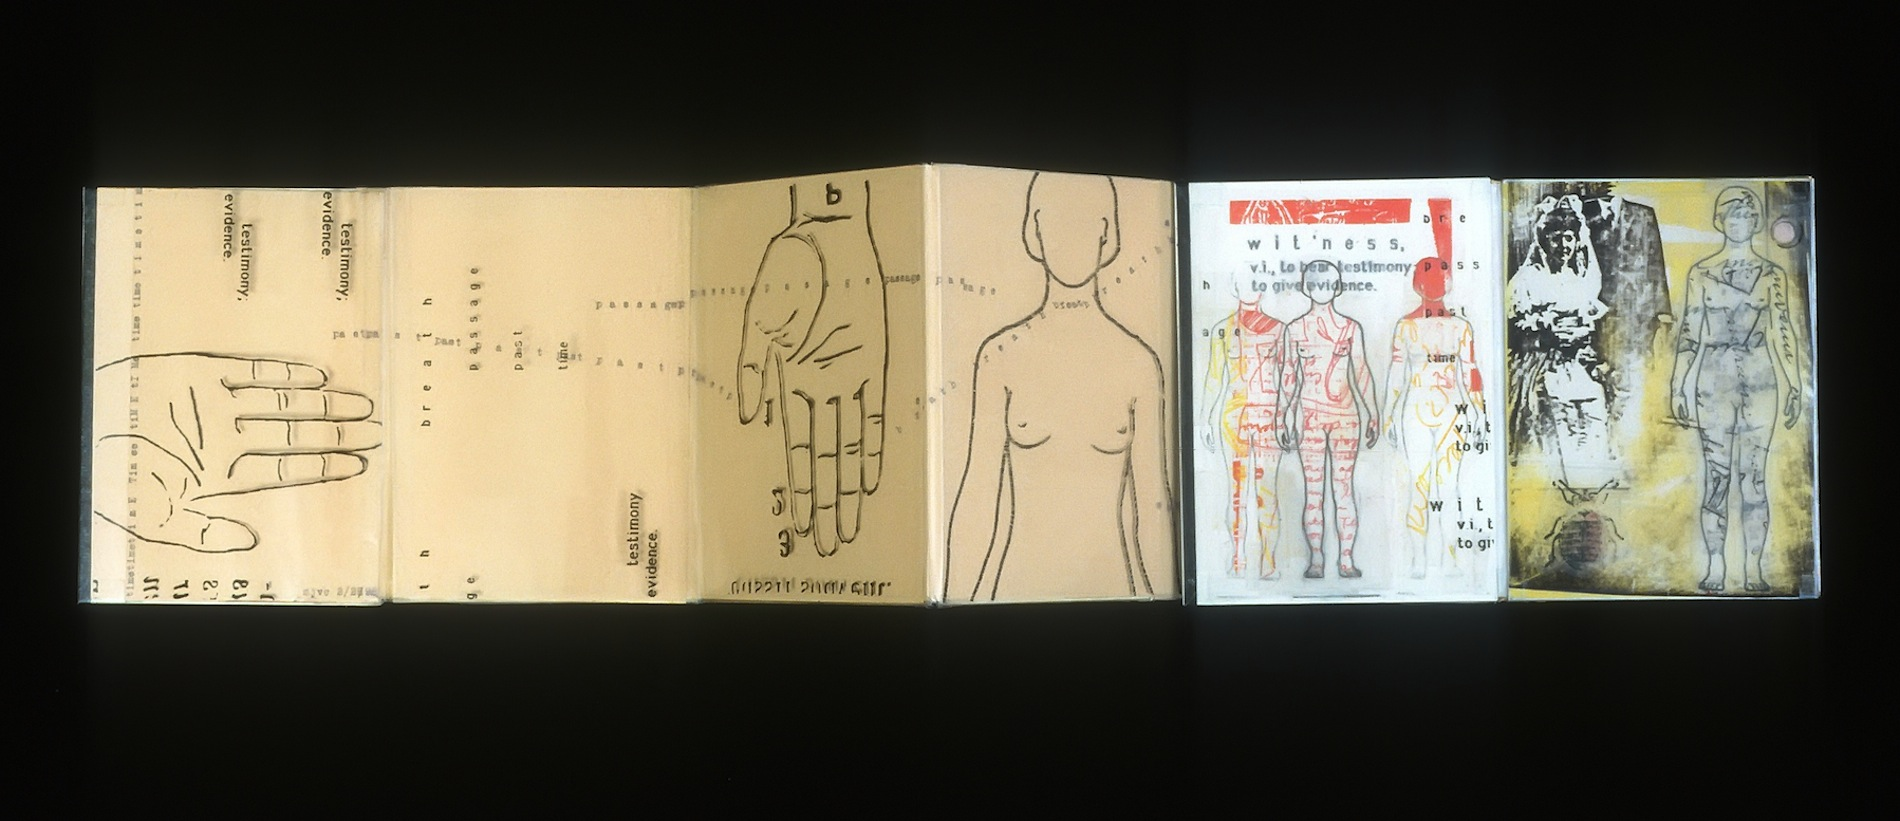 "ARTIST BOOKS ""WITNESS""  Accordion Book:Recto/Verso  1998"